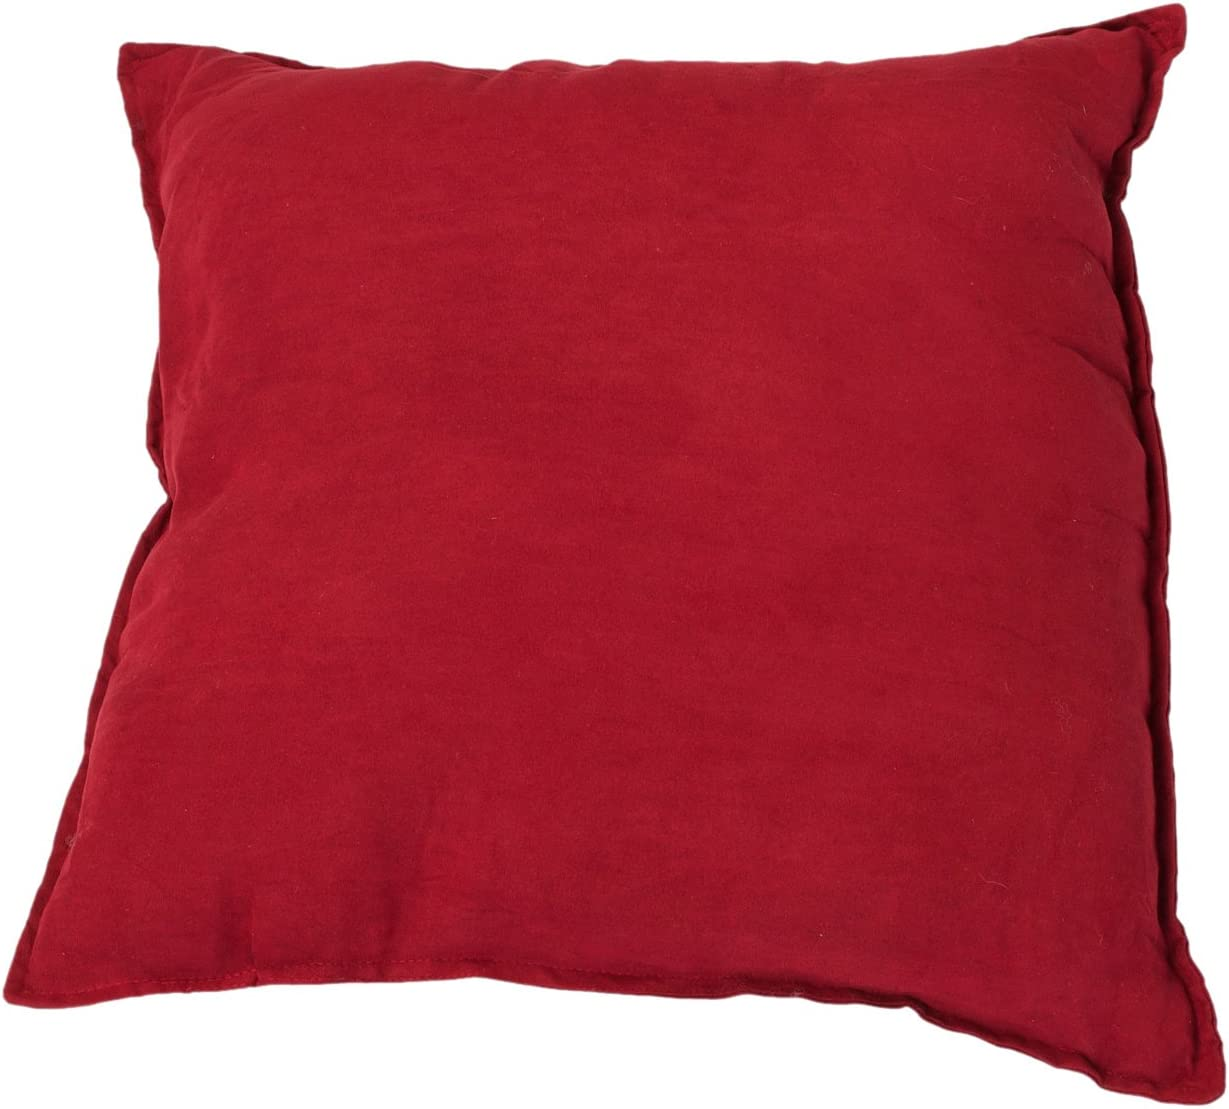 Hudson Street Faux Suede 2-Pack Decorative Pillow, 22 by 22-Inch, Crimson